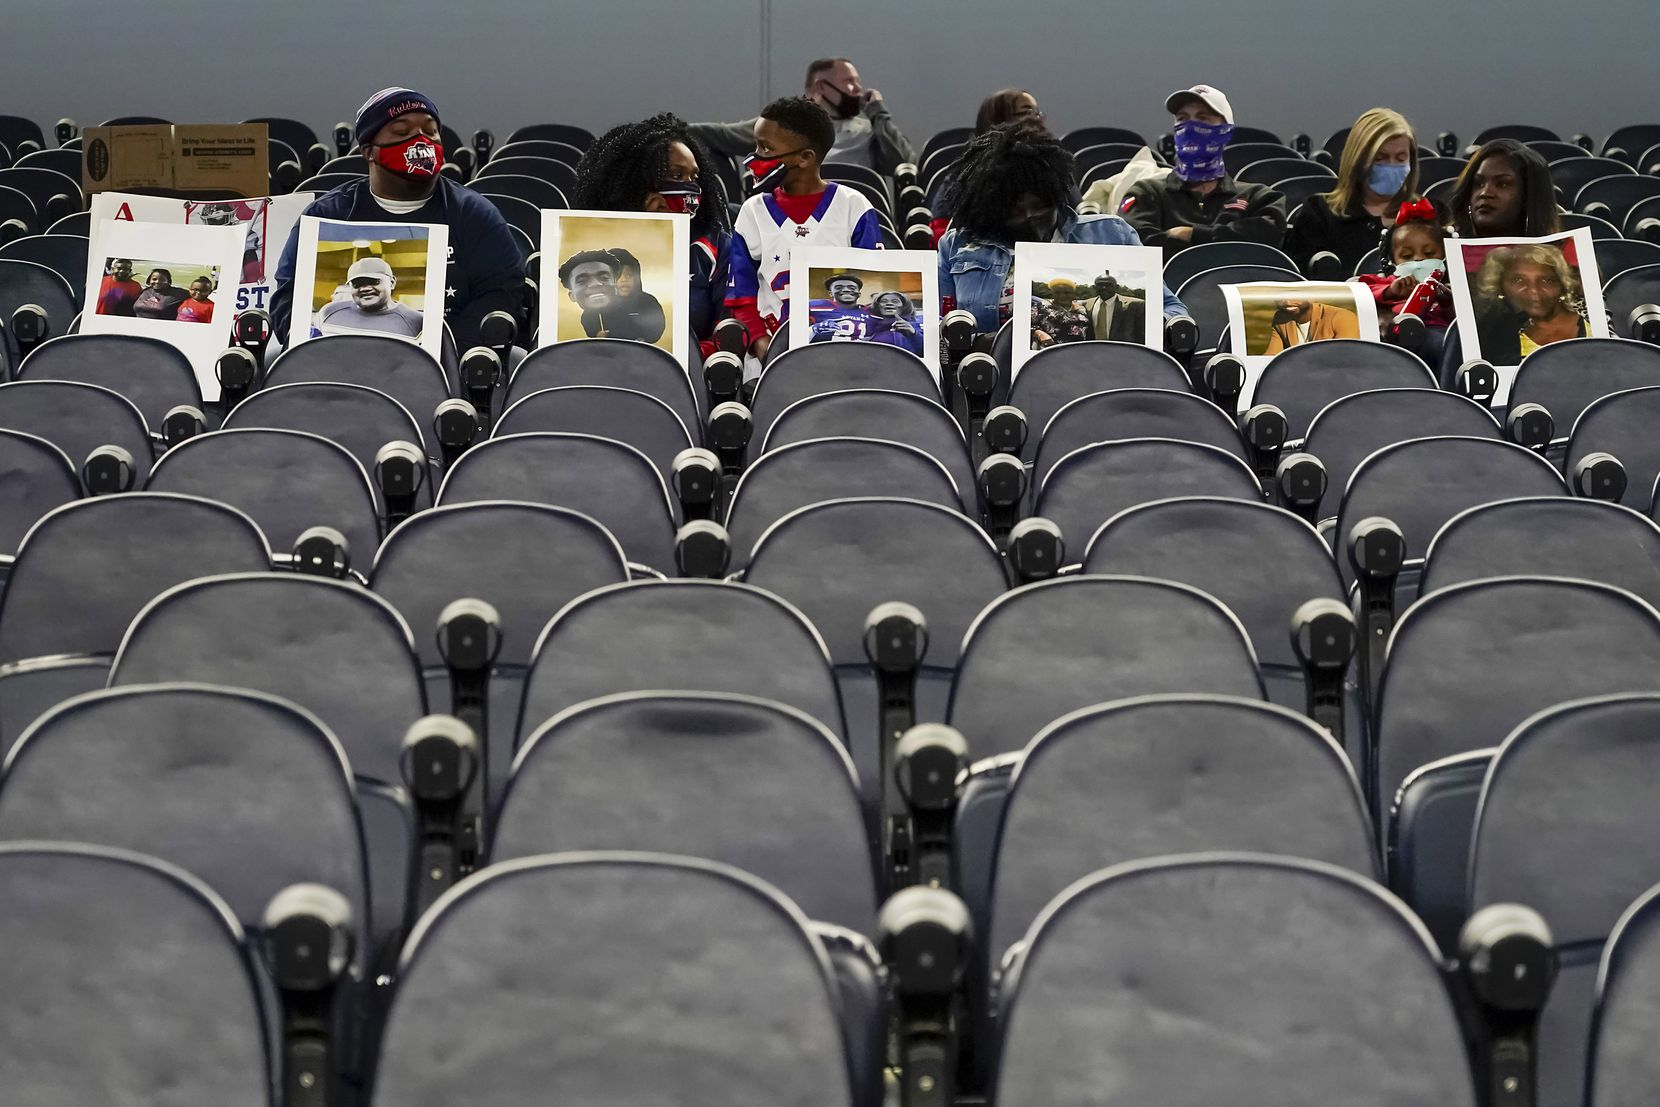 Denton Ryan fans wait for their team to take the field to face Cedar Park in the Class 5A Division I state football championship game at AT&T Stadium on Friday, Jan. 15, 2021, in Arlington, Texas. (Smiley N. Pool/The Dallas Morning News)